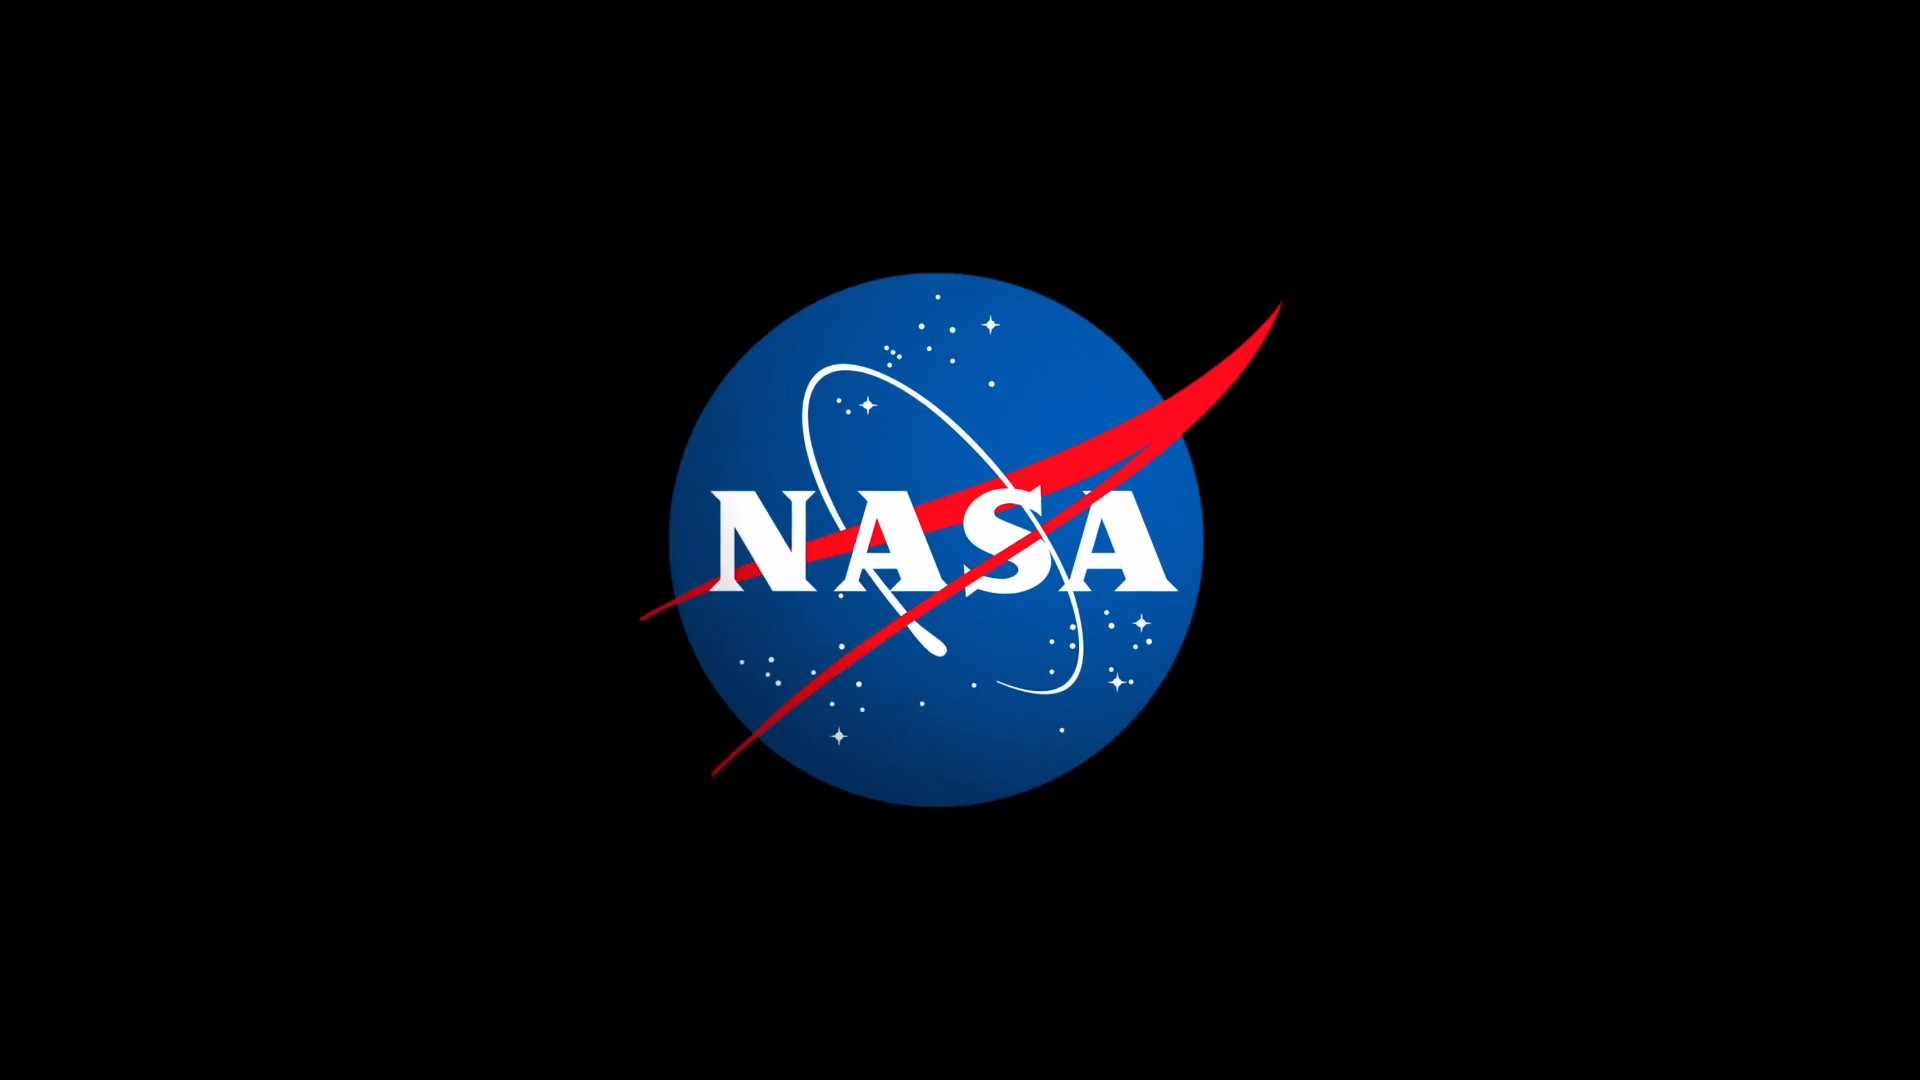 1920x1080 Nasa Meatball Logo, iPhone Wallpaper, Facebook Cover, Twitter .